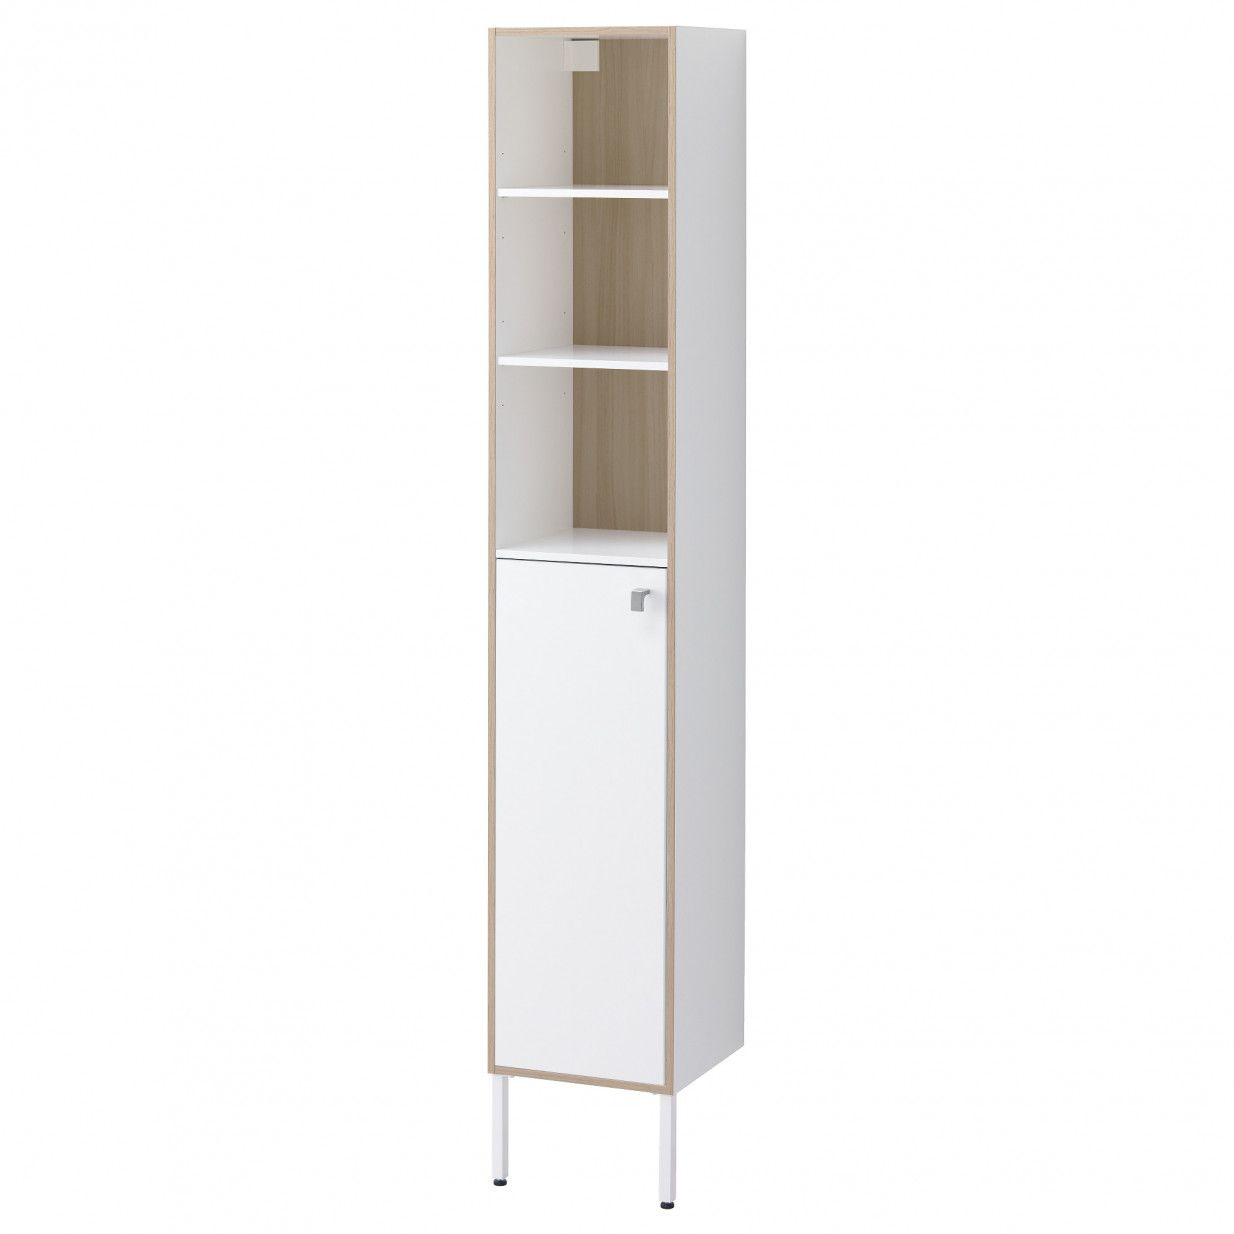 4 Ikea Tall Bathroom Cabinet - Best Paint for Interior Walls